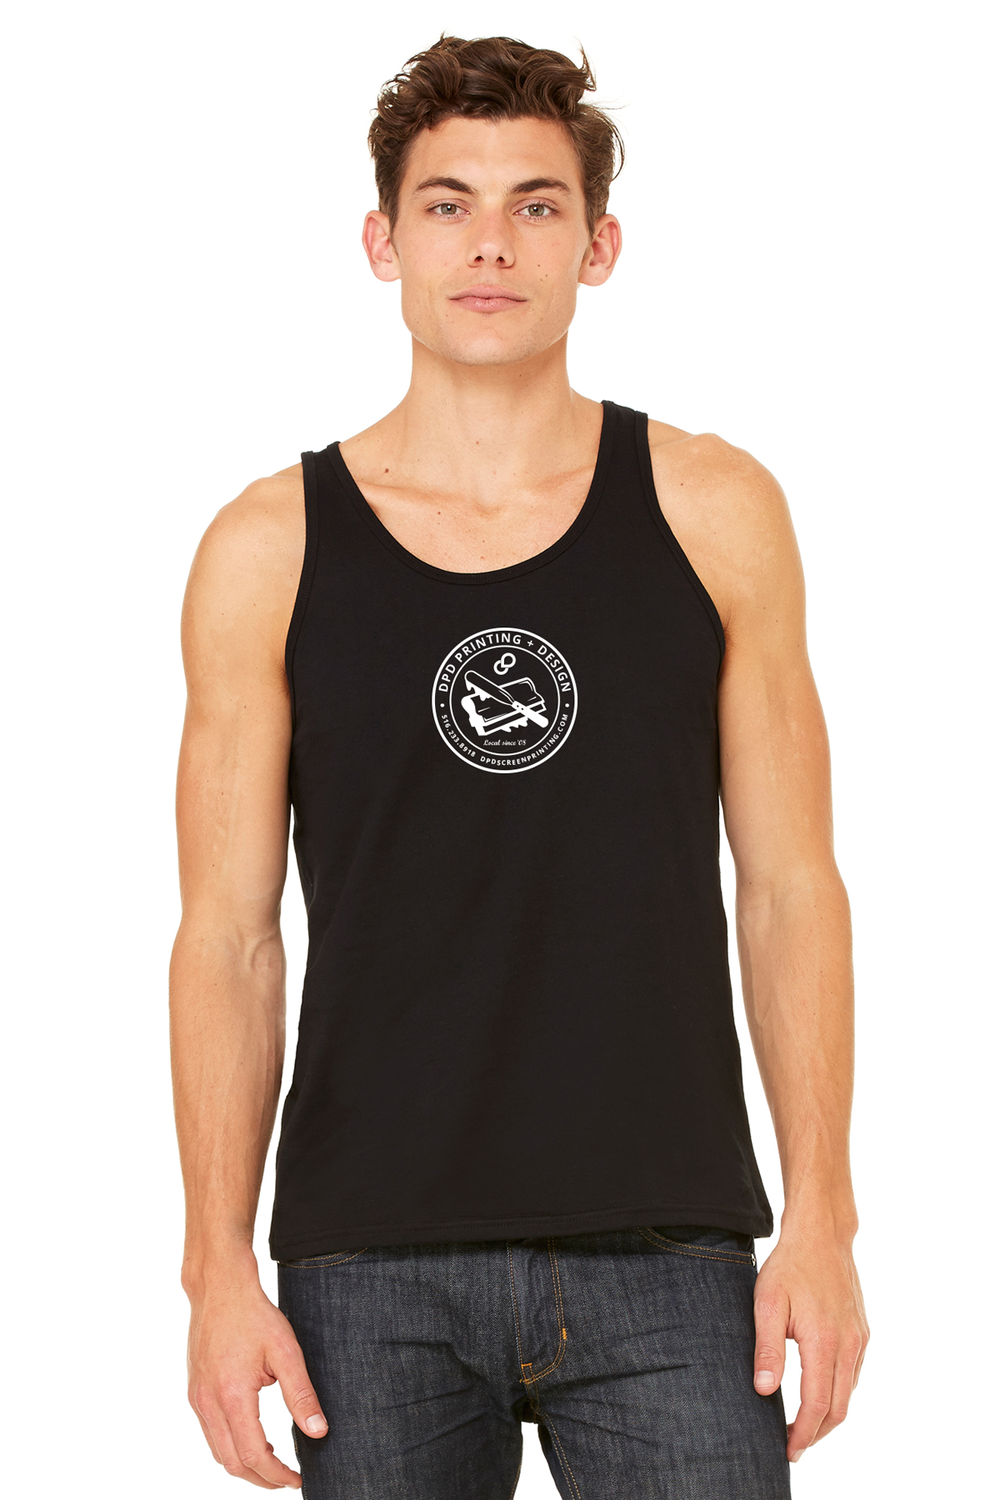 Tank-Tops - Classic or Muscle Tanks, Crops